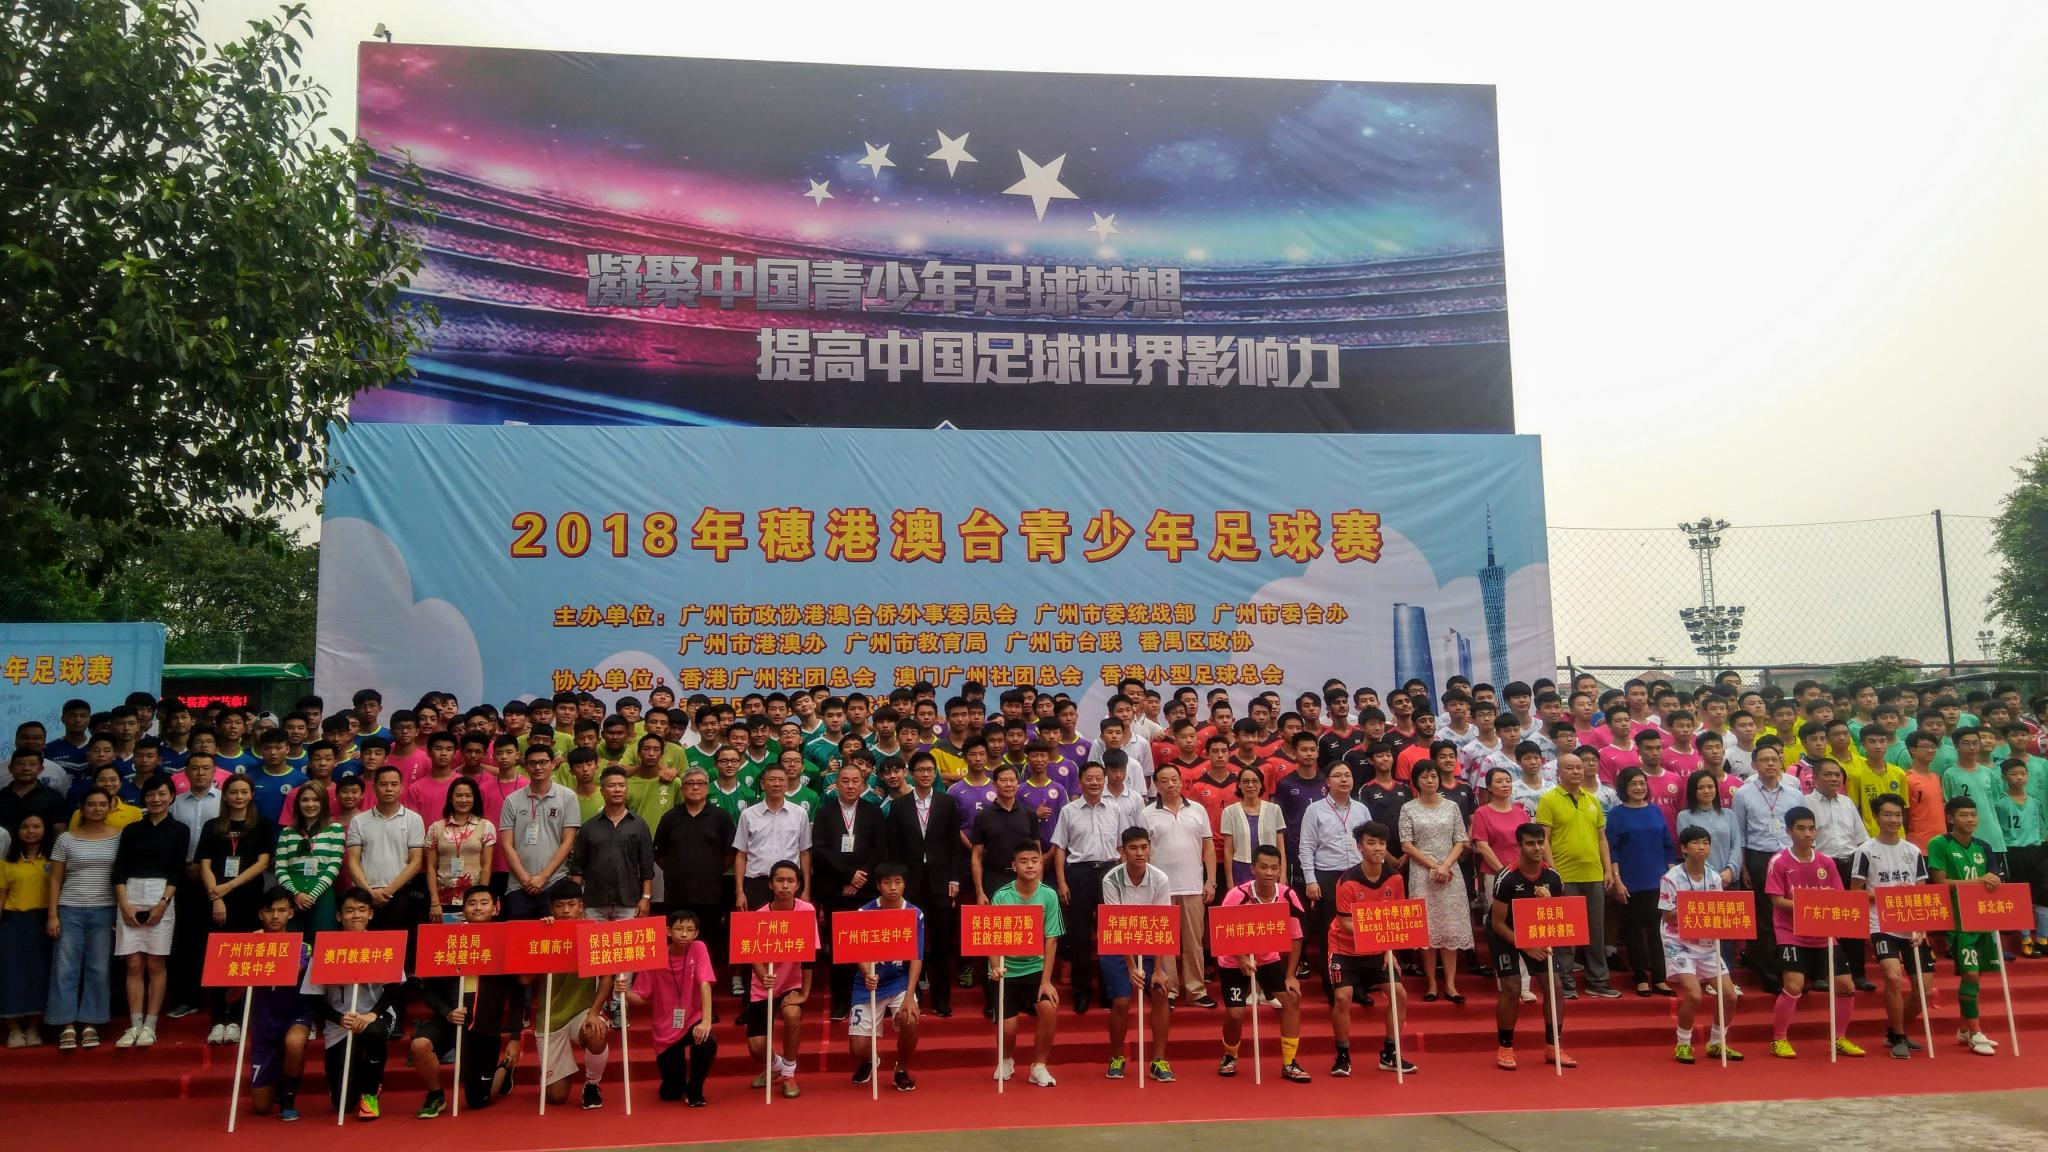 Sixteen teams from Guangzhou, Hong Kong, Macau and Taiwan joined this football competition!